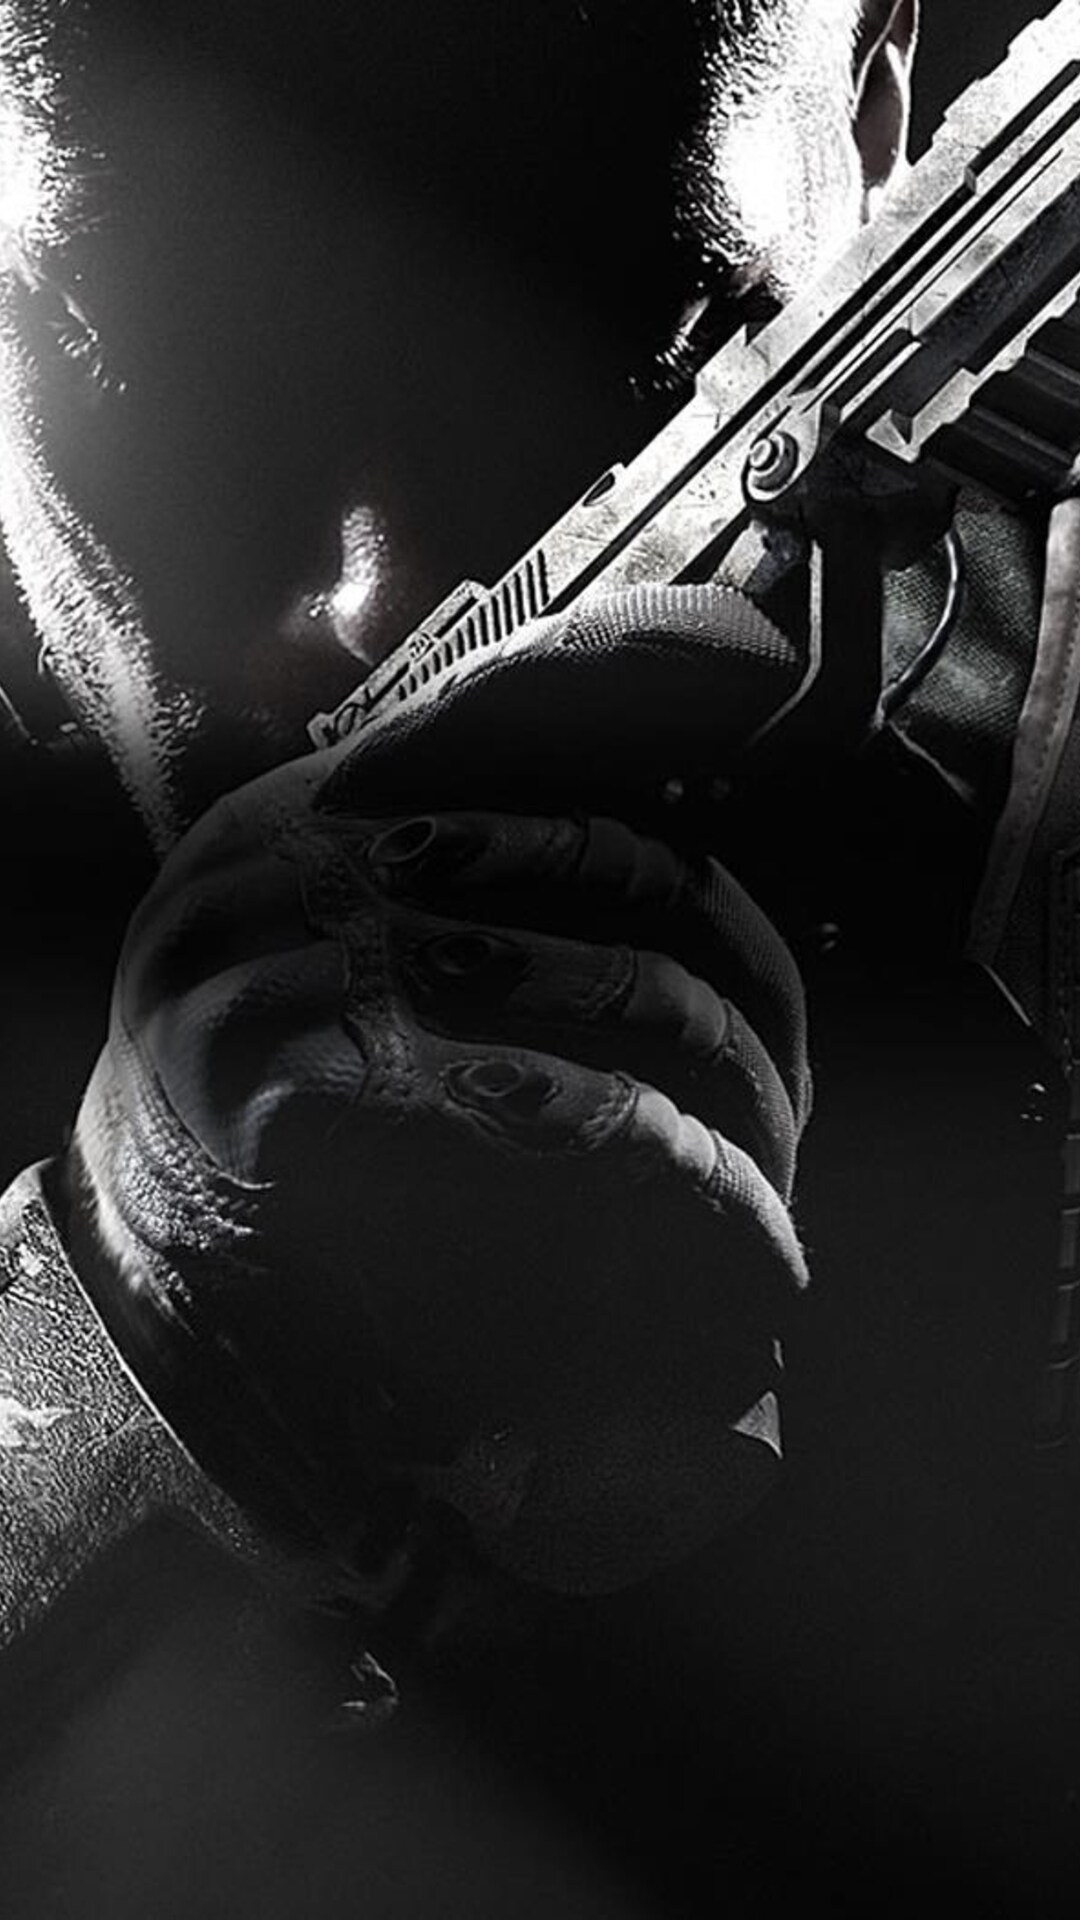 call-of-duty-black-ops-2-wallpaper.jpg